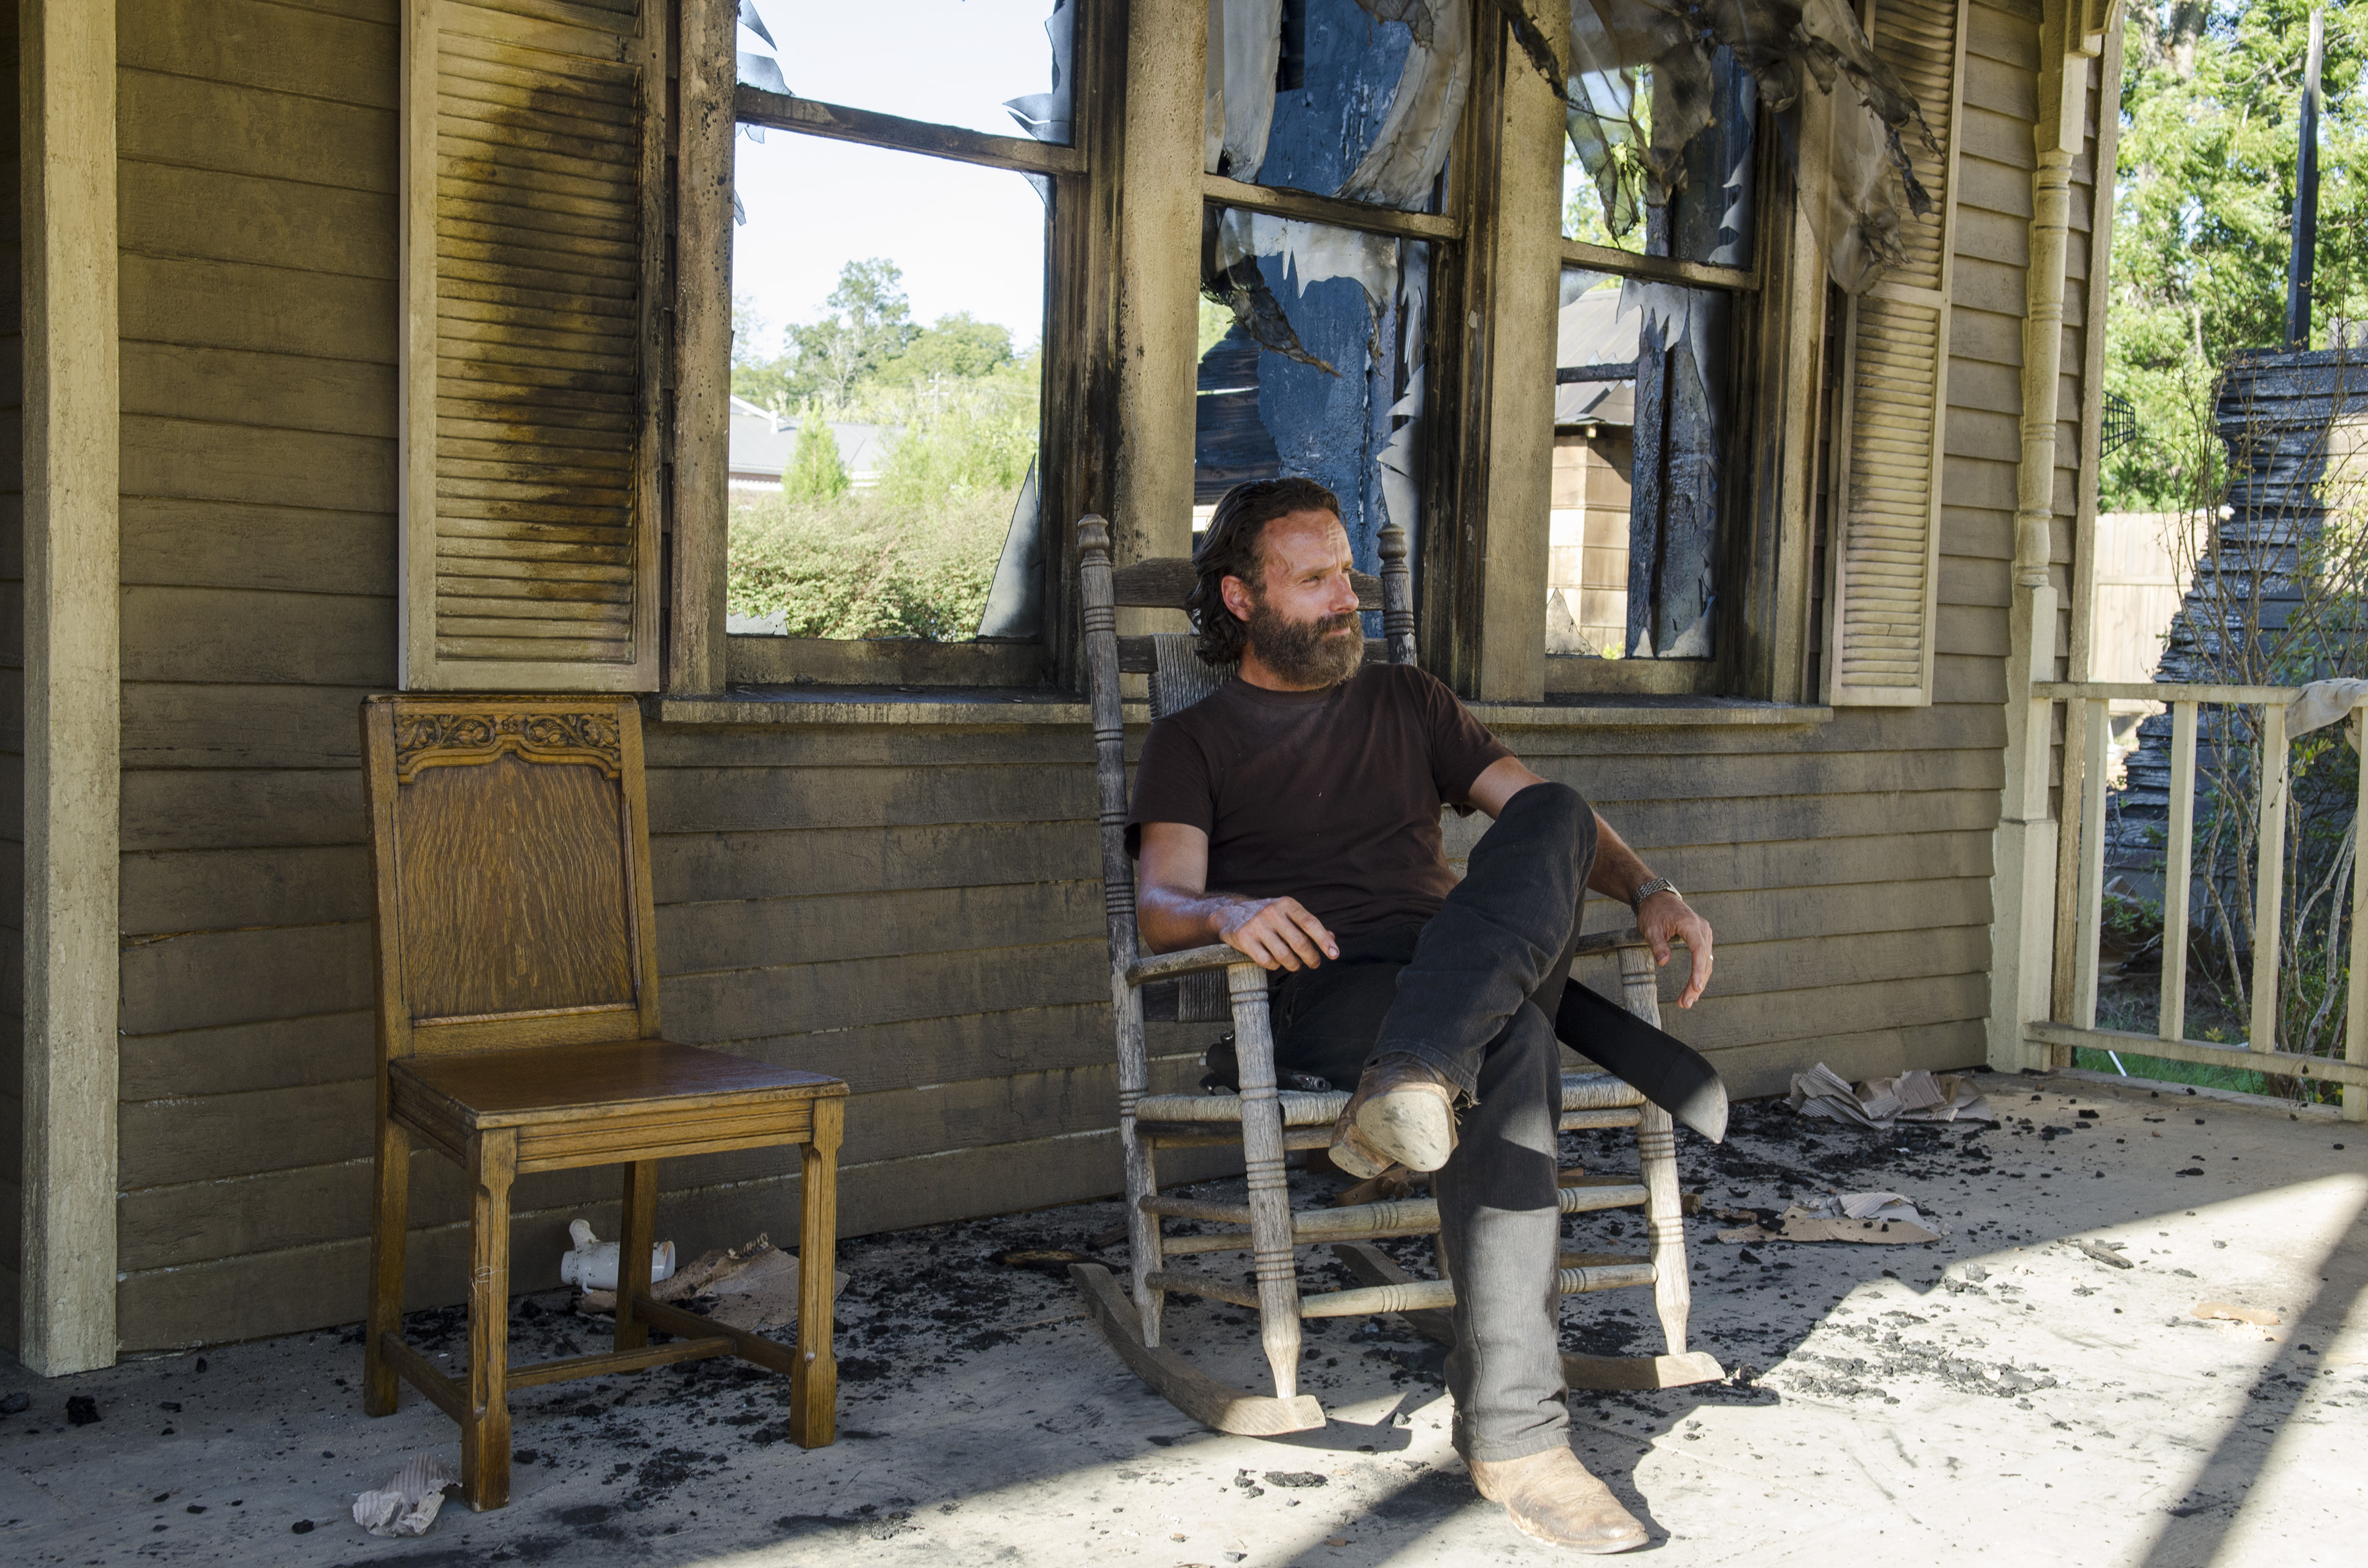 The Most Frustrating Thing About 'The Walking Dead'